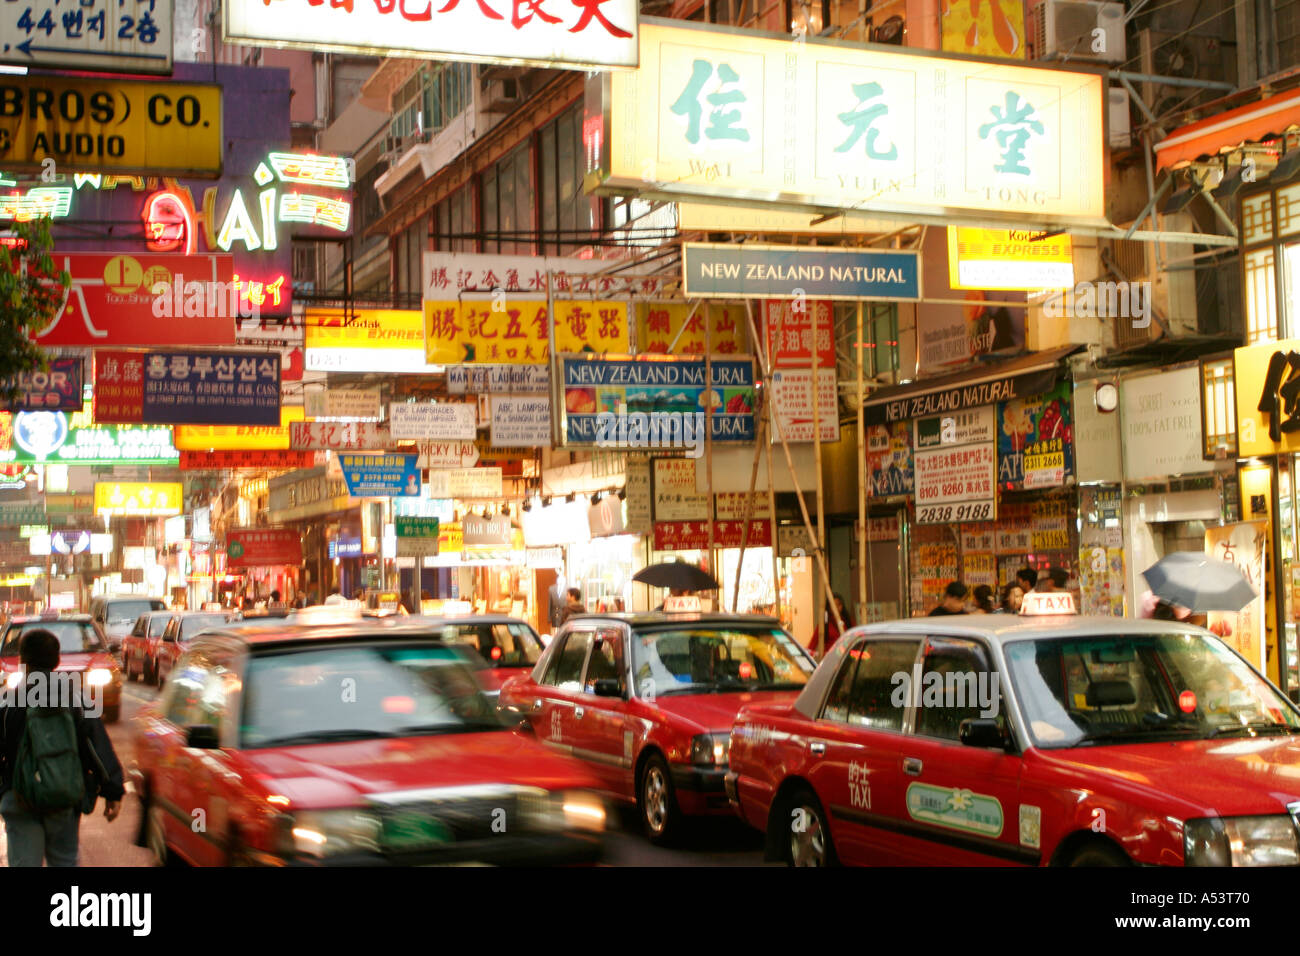 Neon street signs and advertising in kowloon hong kong island in neon street signs and advertising in kowloon hong kong island in china biocorpaavc Choice Image